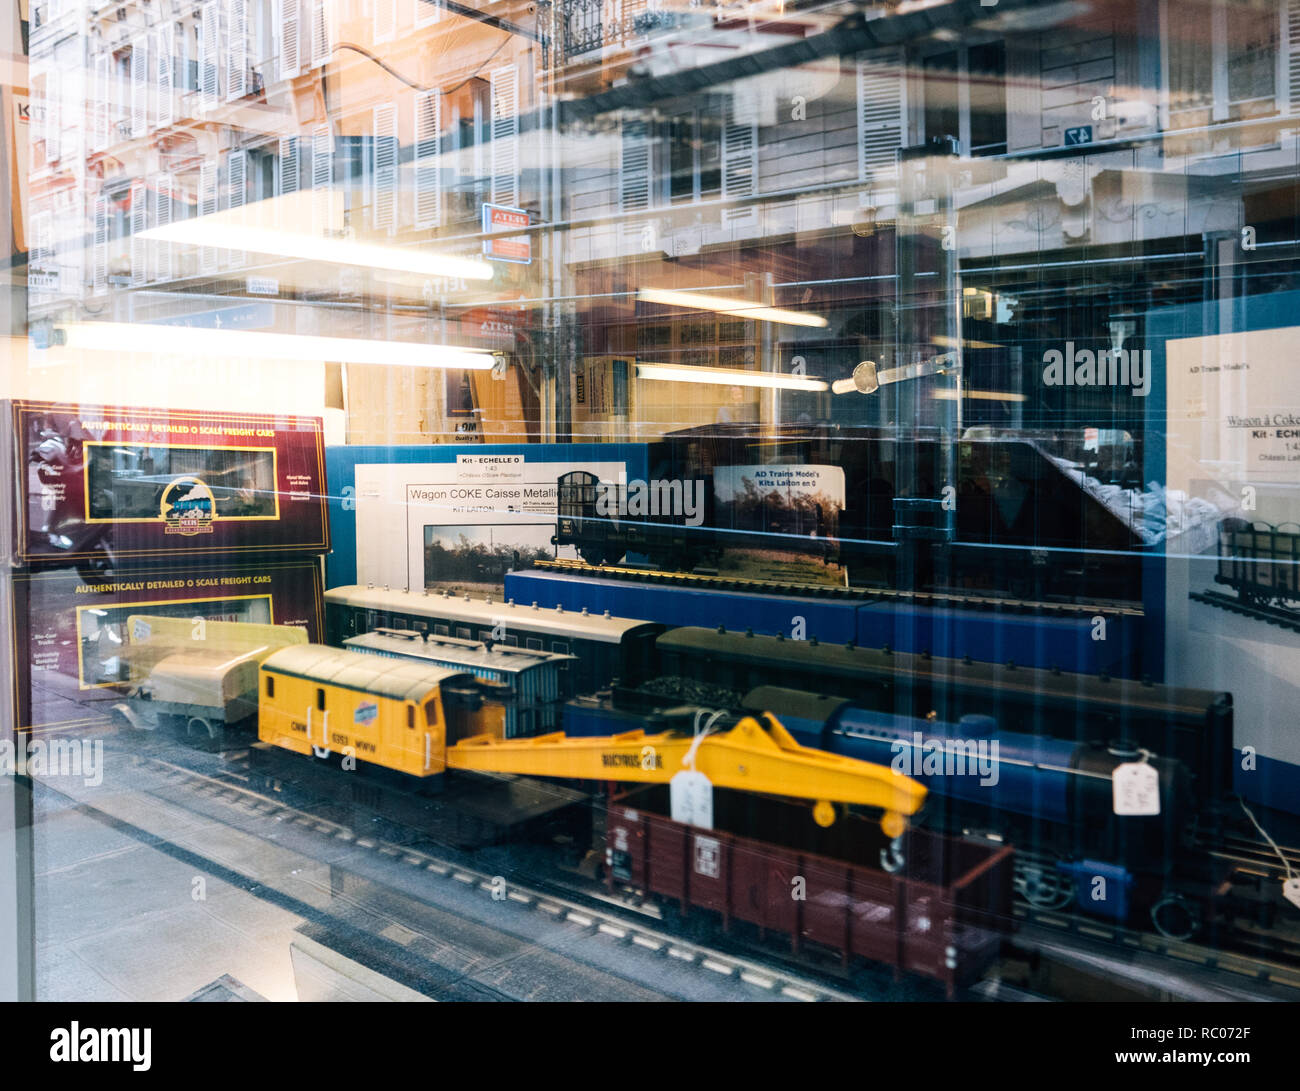 PARIS, FRANCE - JAN 30, 2018: Store window facade selling multiple toy collectible model trains featuring all railways in the world in central Paris, France Stock Photo